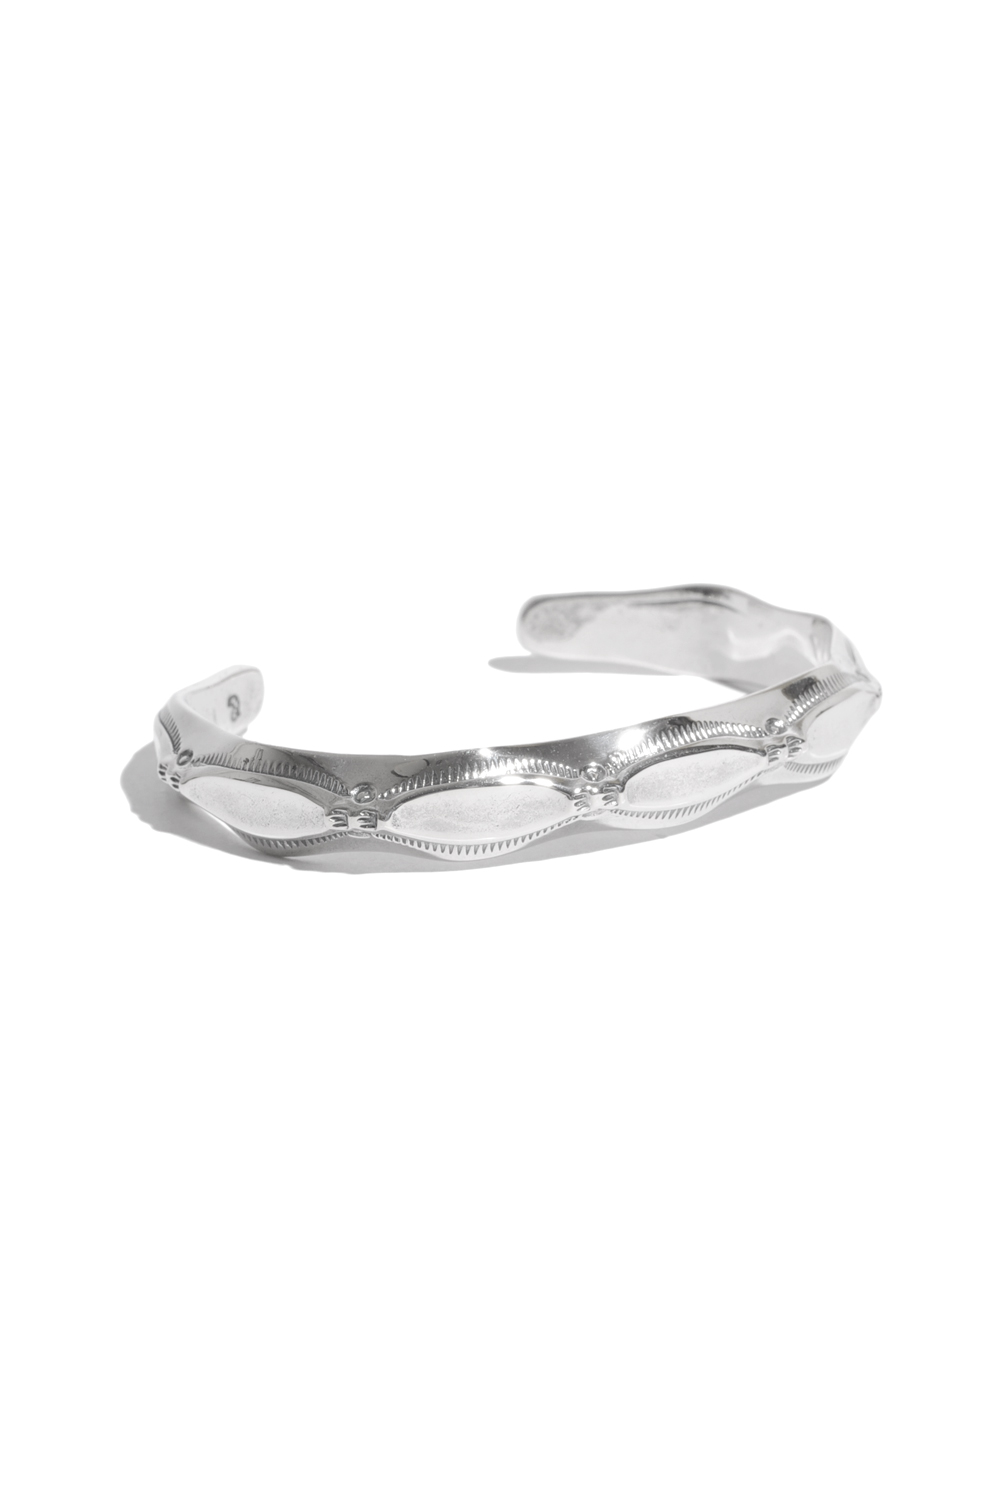 画像1: 【LARRY SMITH】PRESS BANGLE